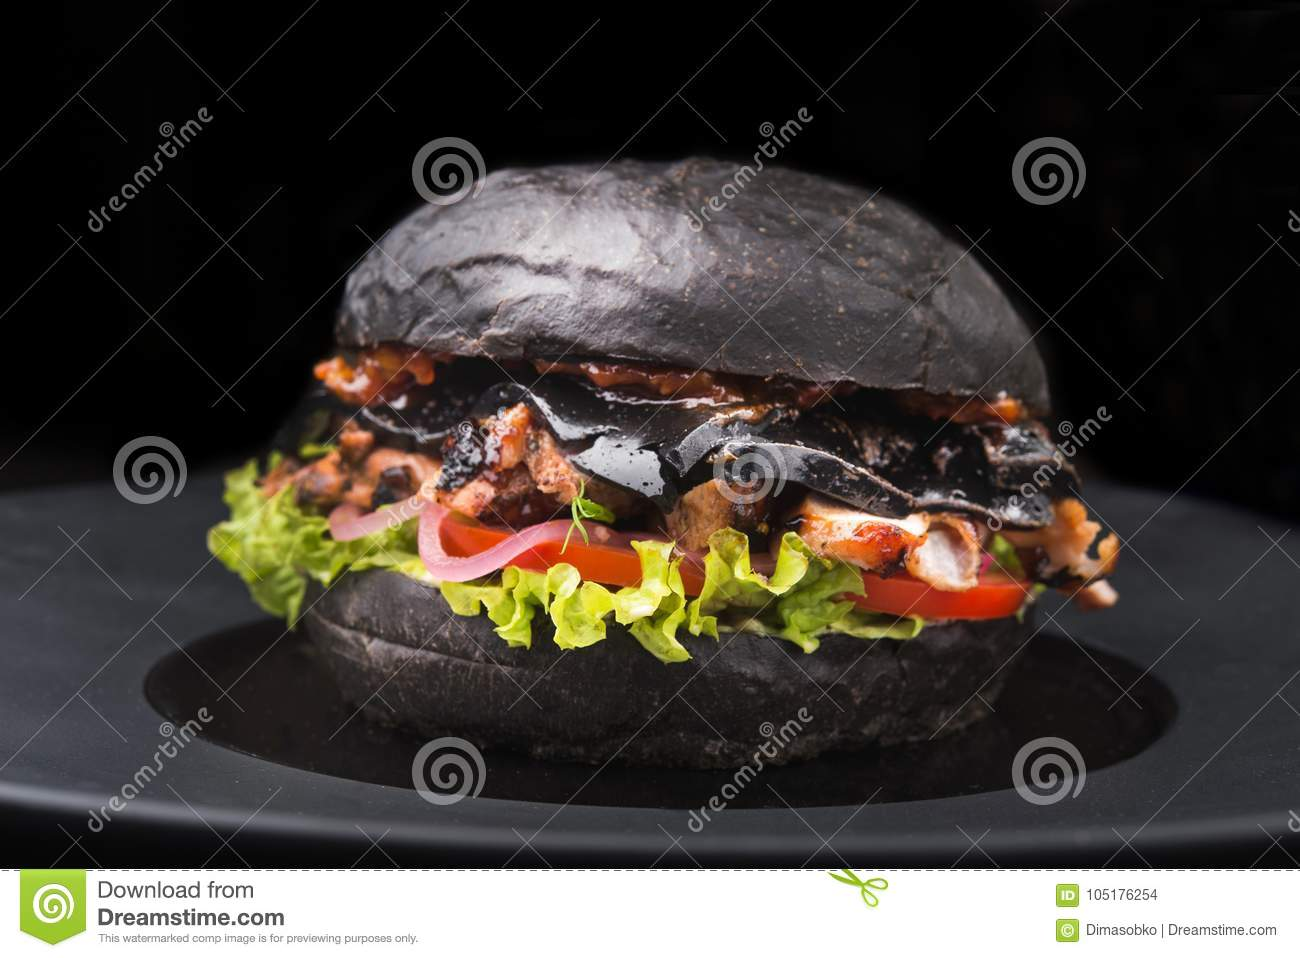 Tasty Black Burger With Beef